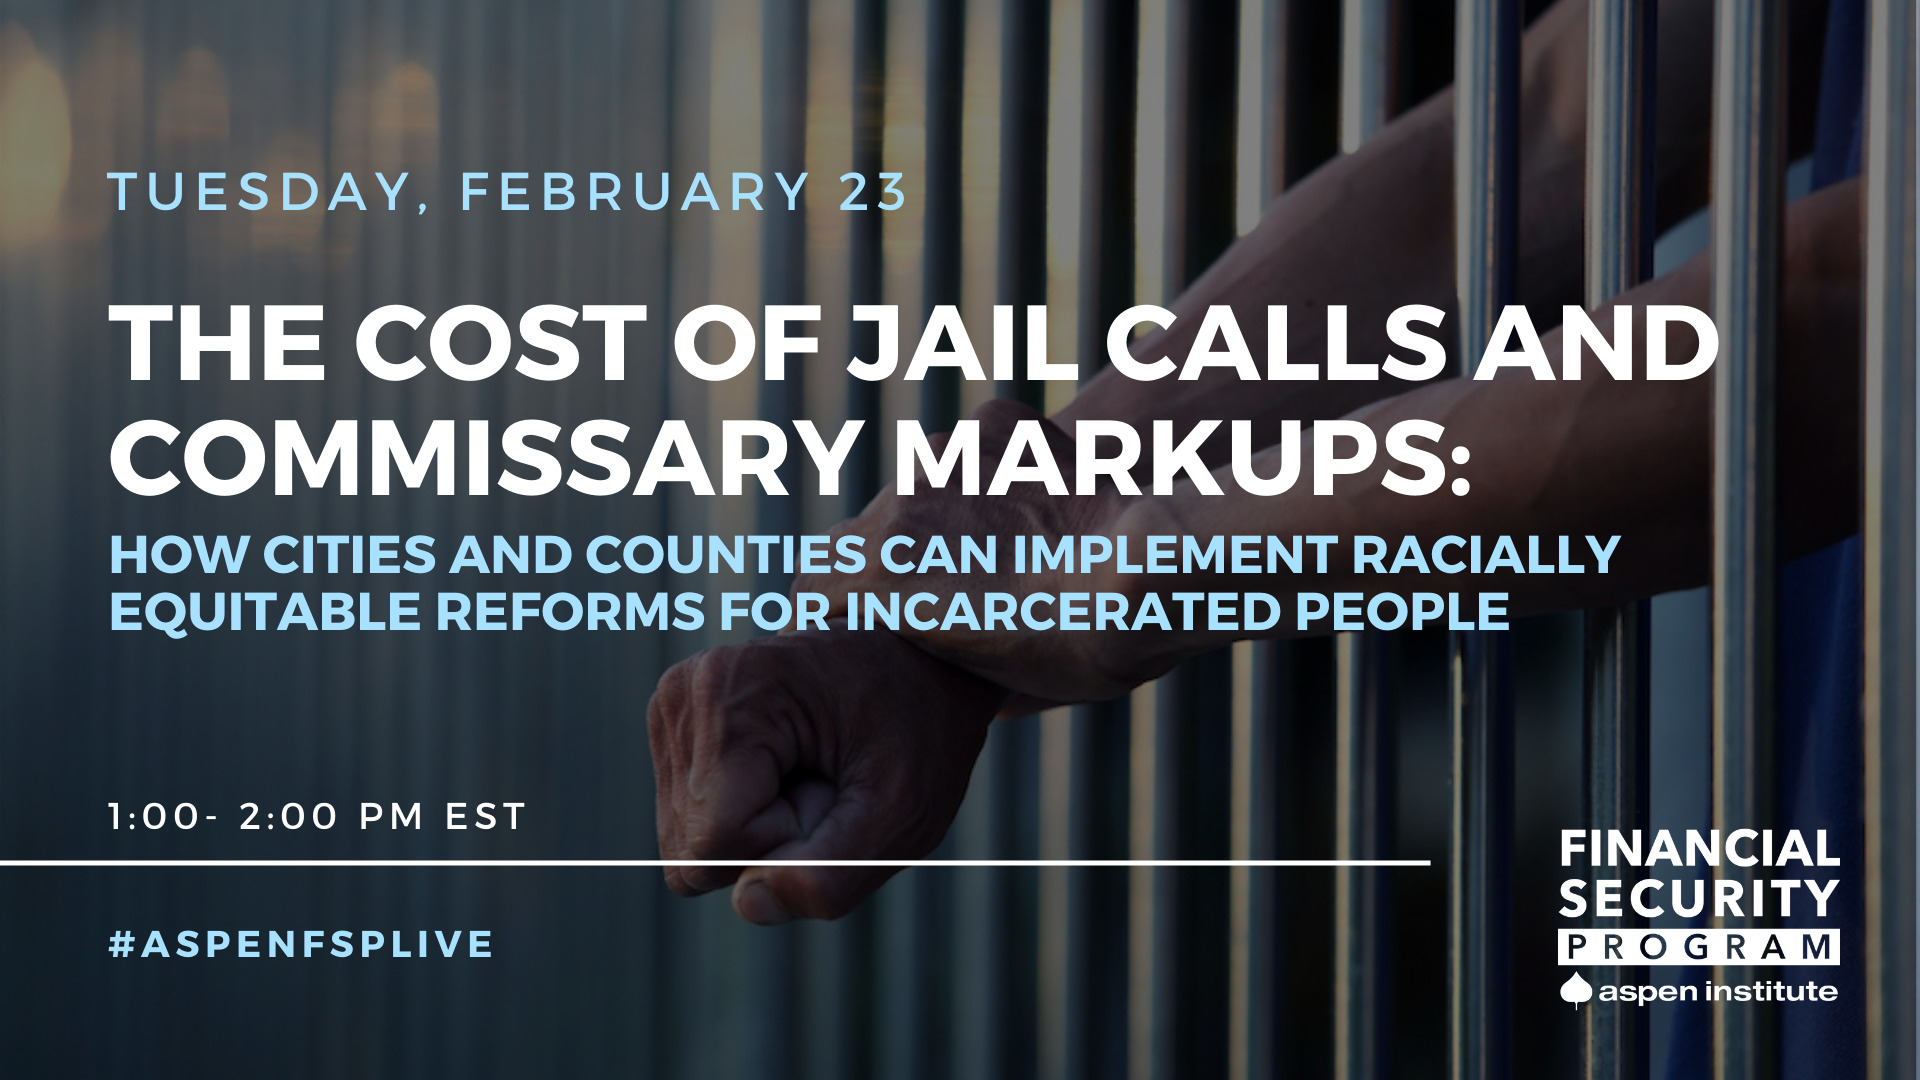 The Cost of Jail Calls and Commissary Markups: How Cities and Counties can Implement Racially Equitable Reforms for Incarcerated People